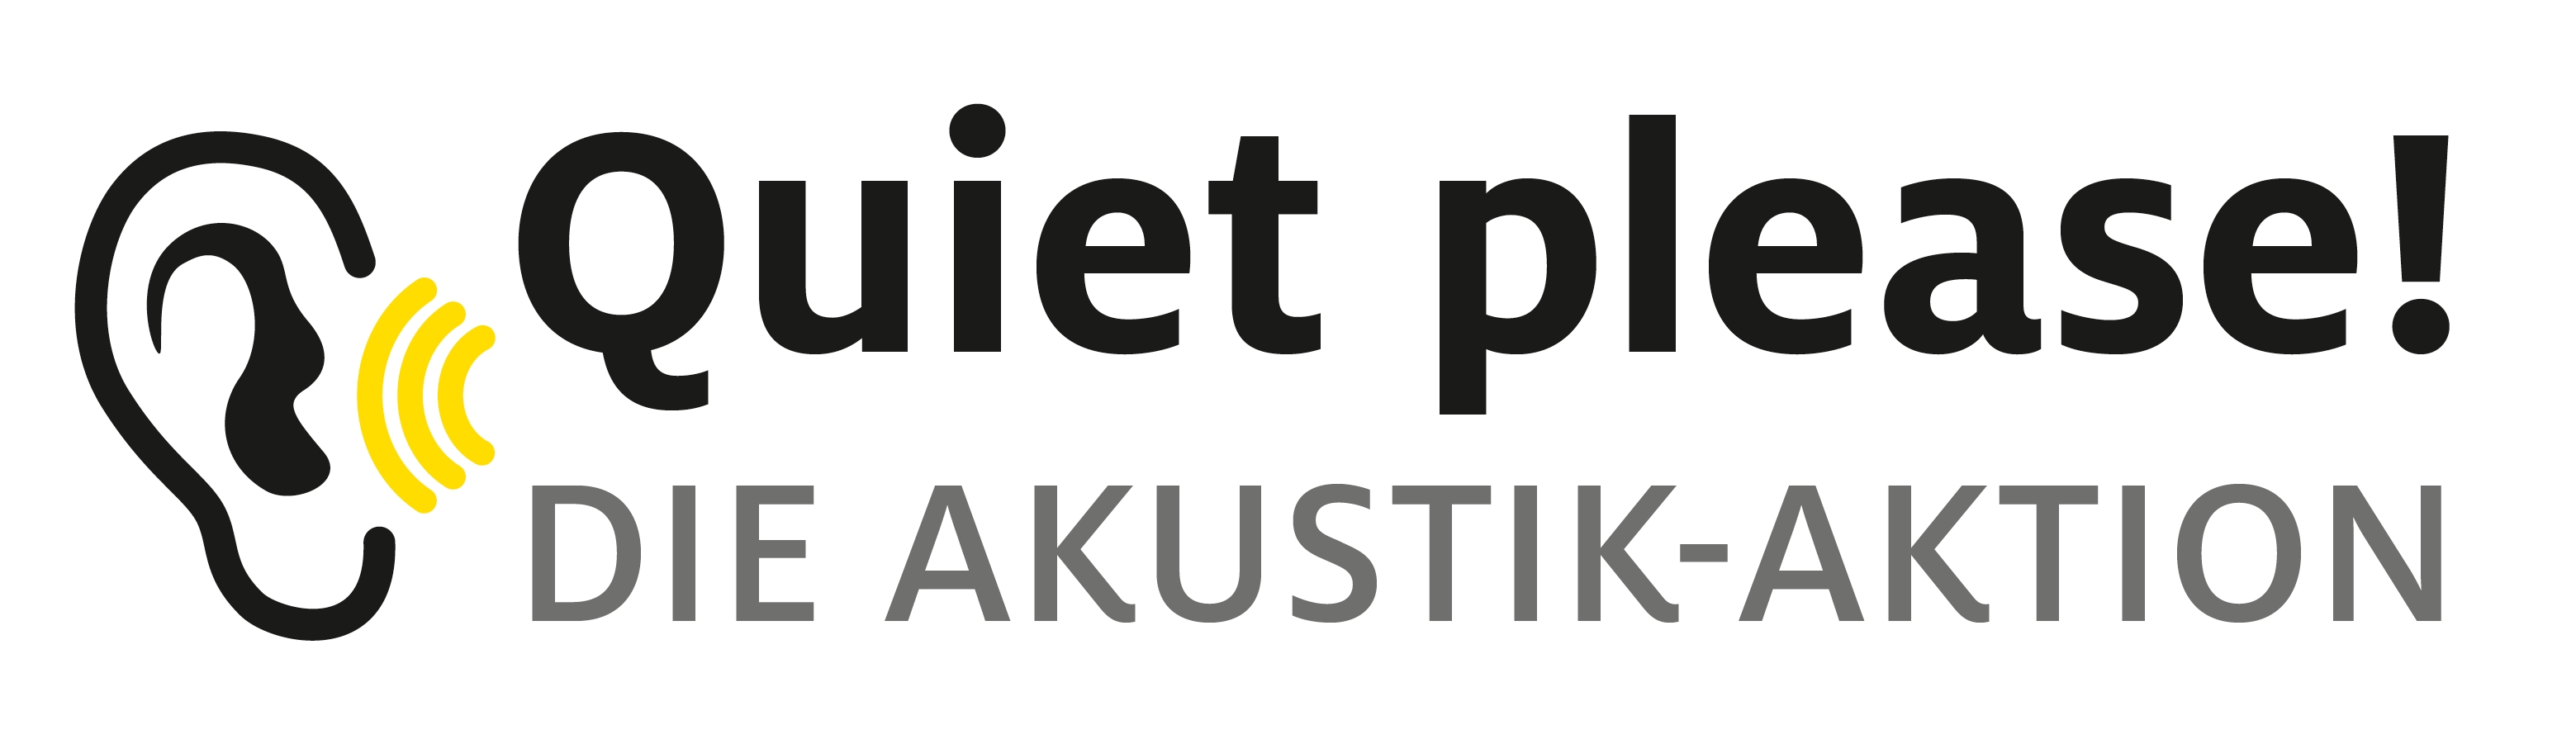 Logo Quiet Please! Die Akustik-Aktion